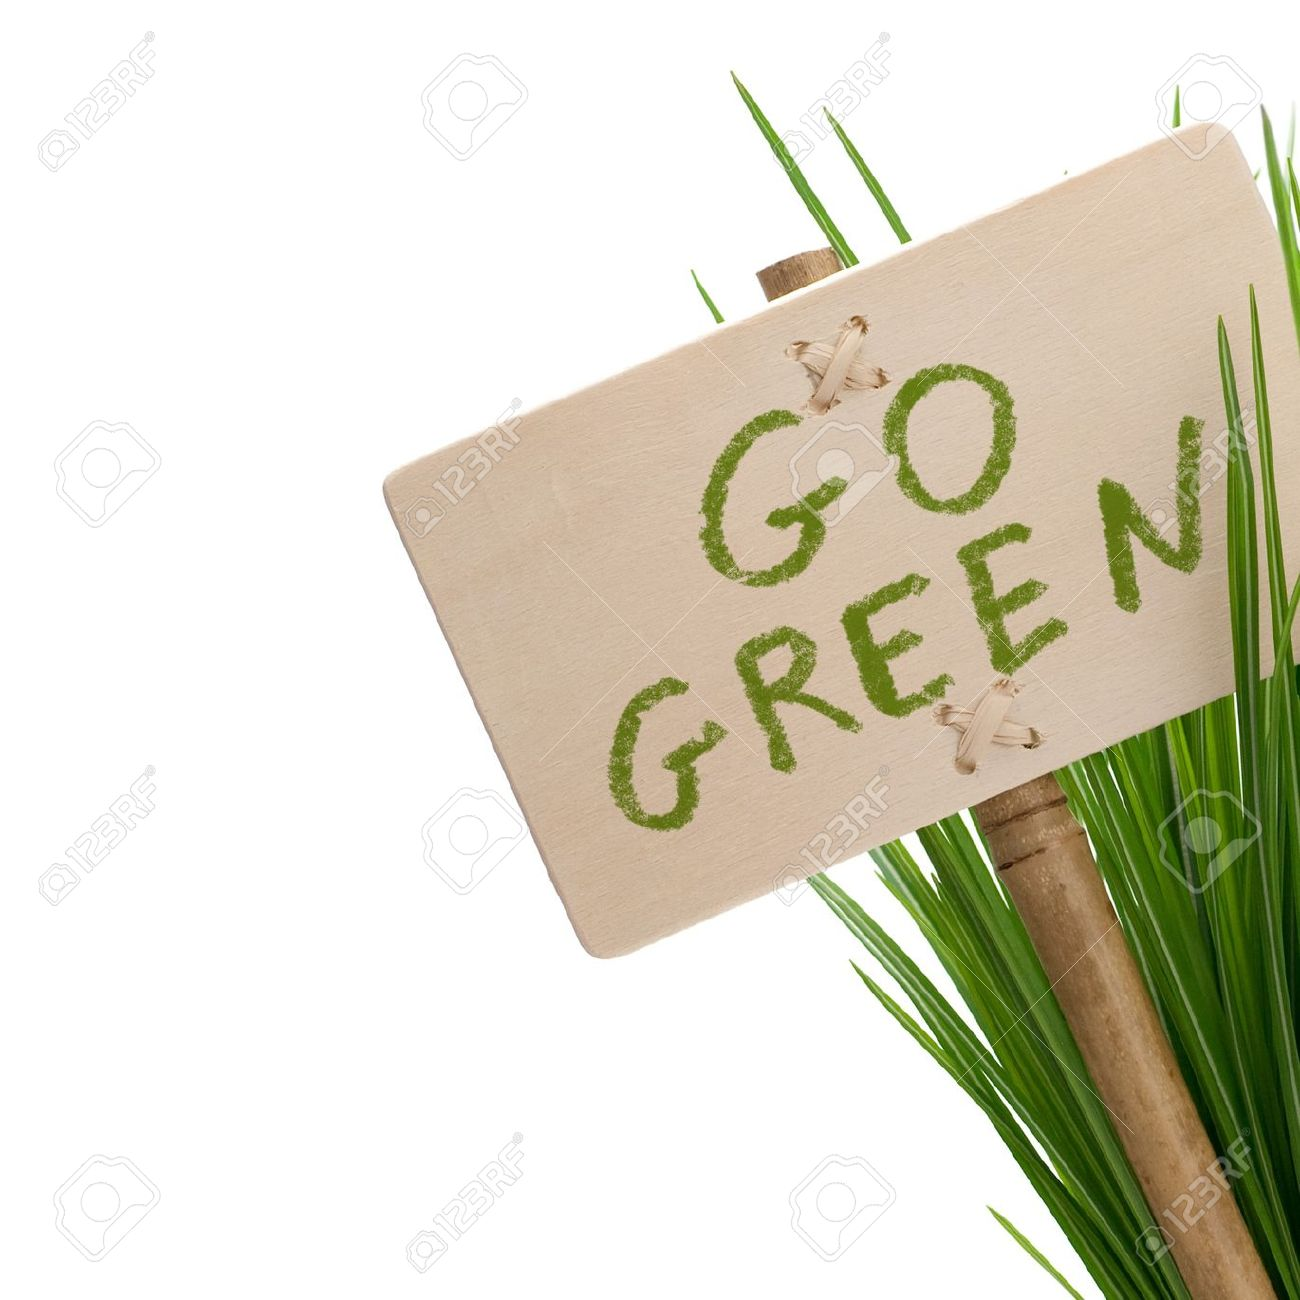 go green message on a wooden panel and green plant - image is isolated on a white background Stock Photo - 7022978